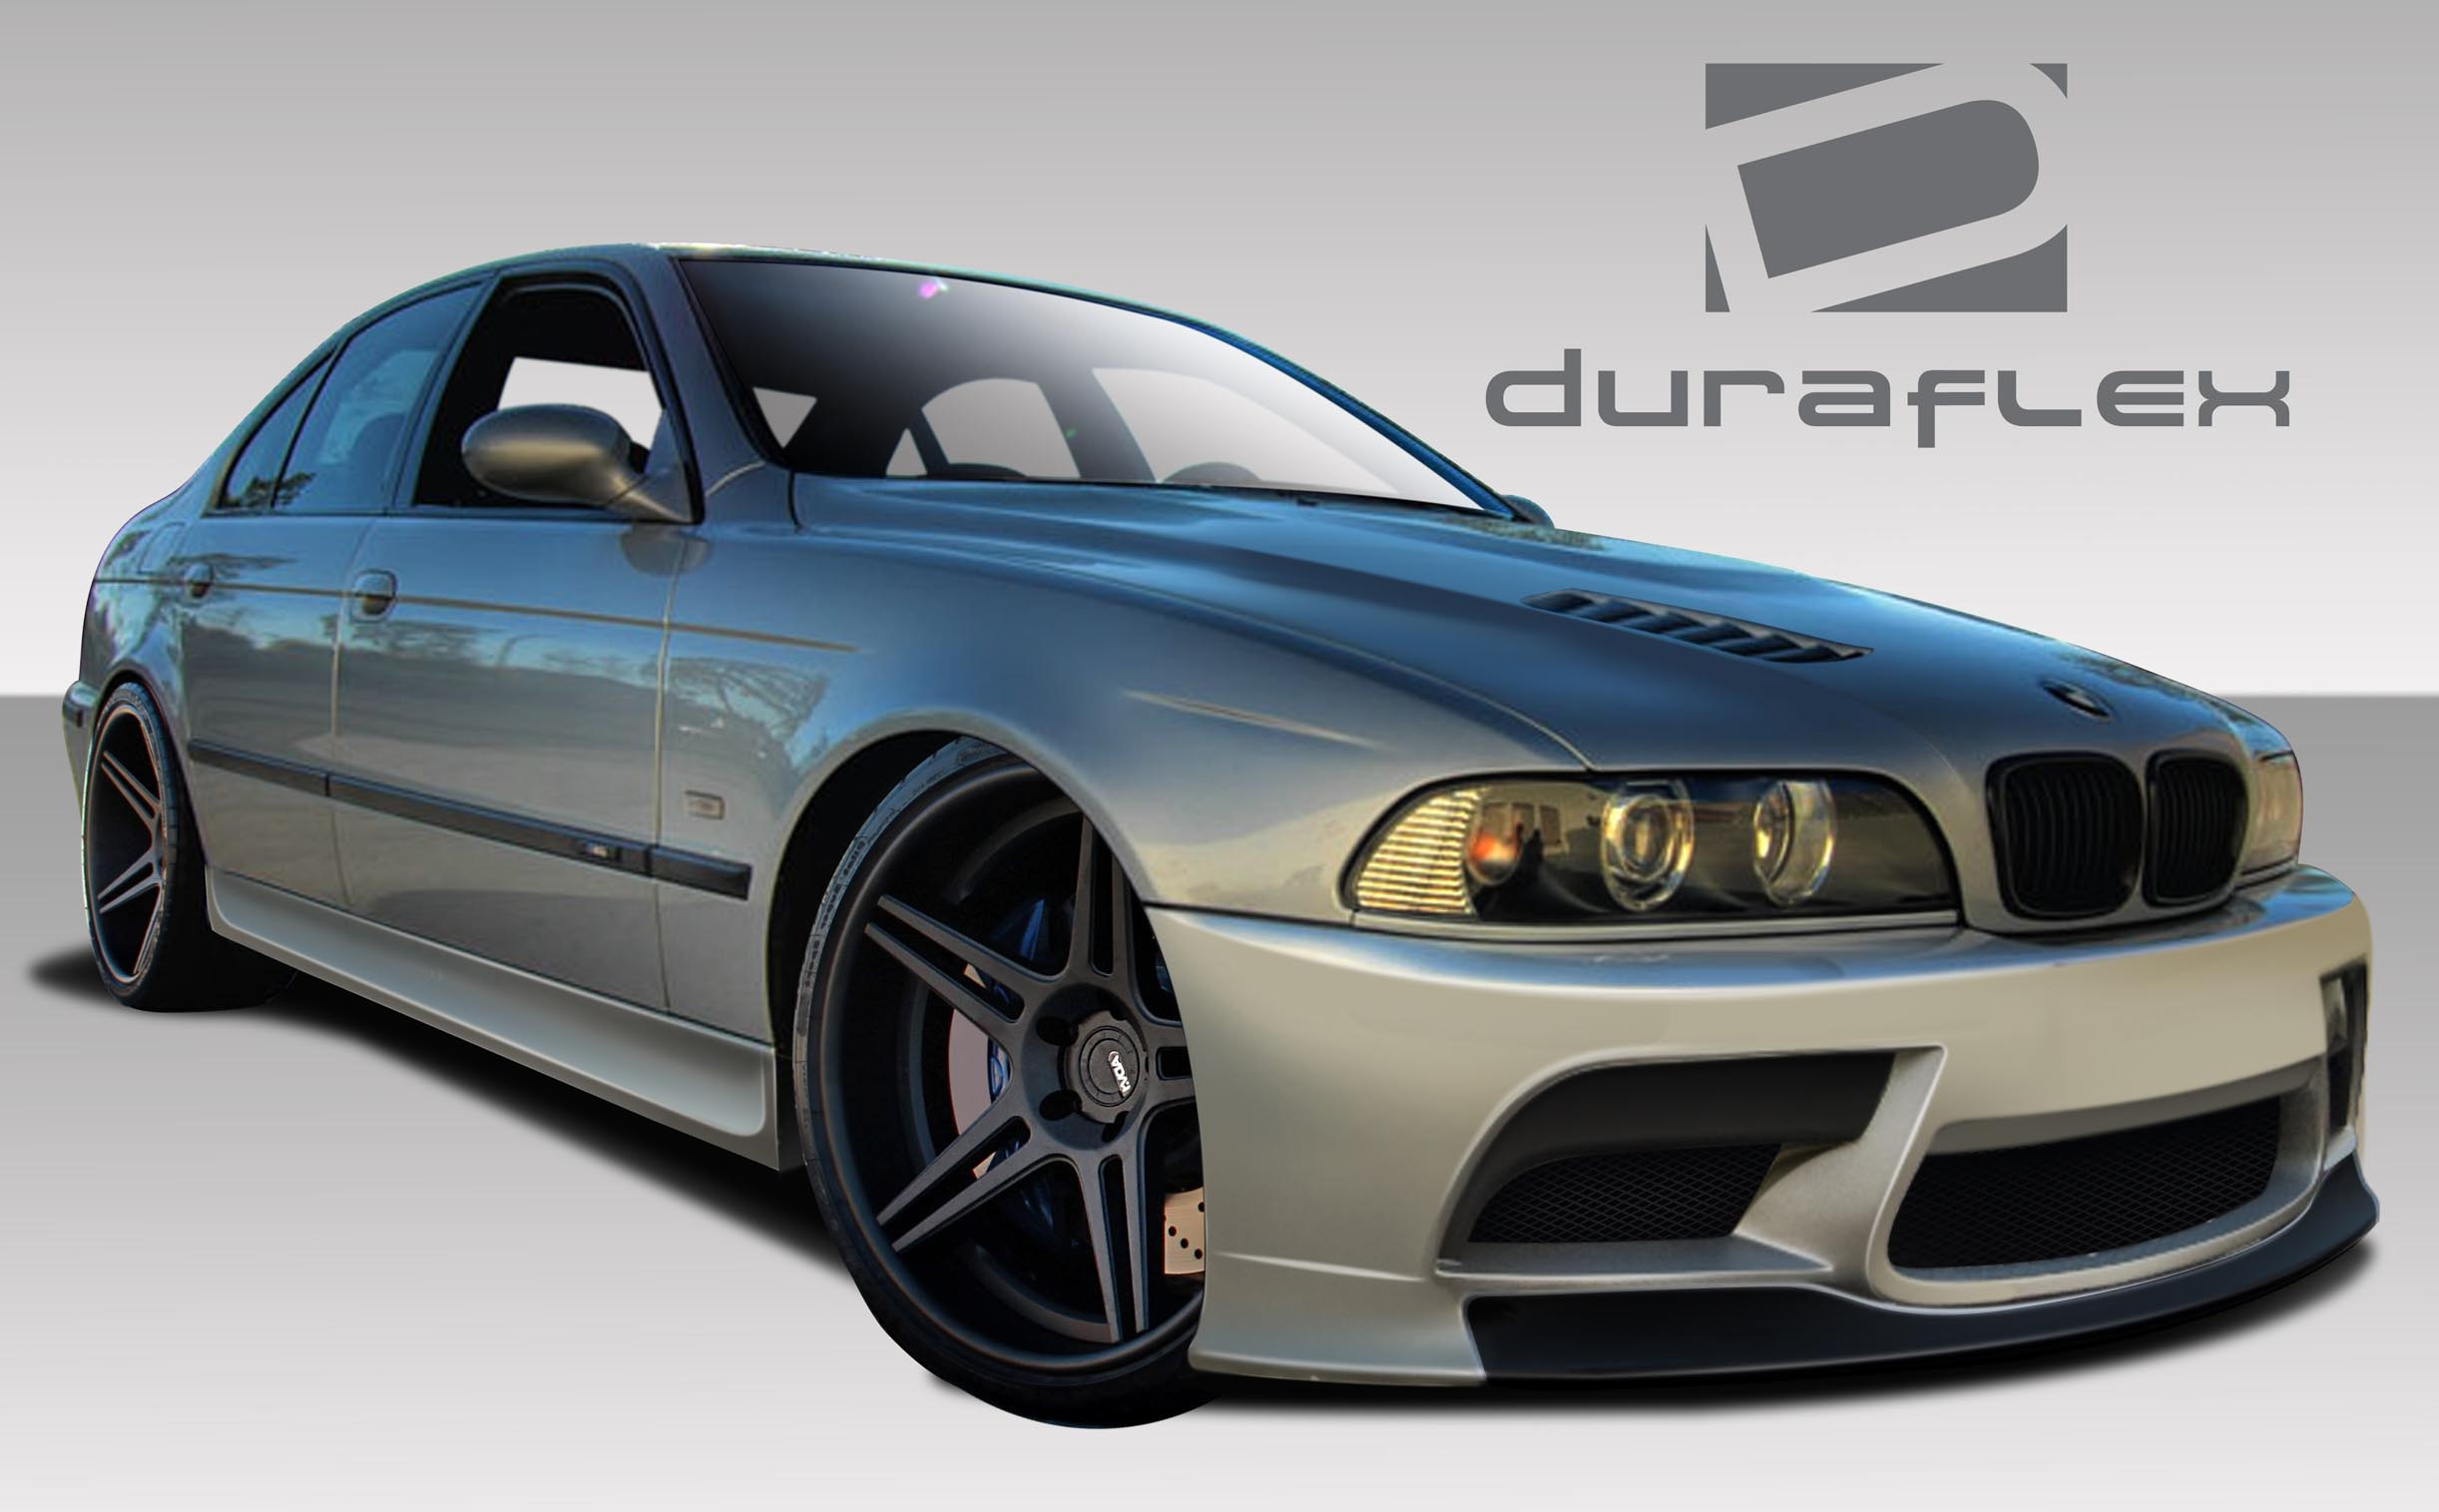 Welcome To Extreme Dimensions Item Group 1997 2003 BMW 5 Series E39 Duraflex GT S Body Kit